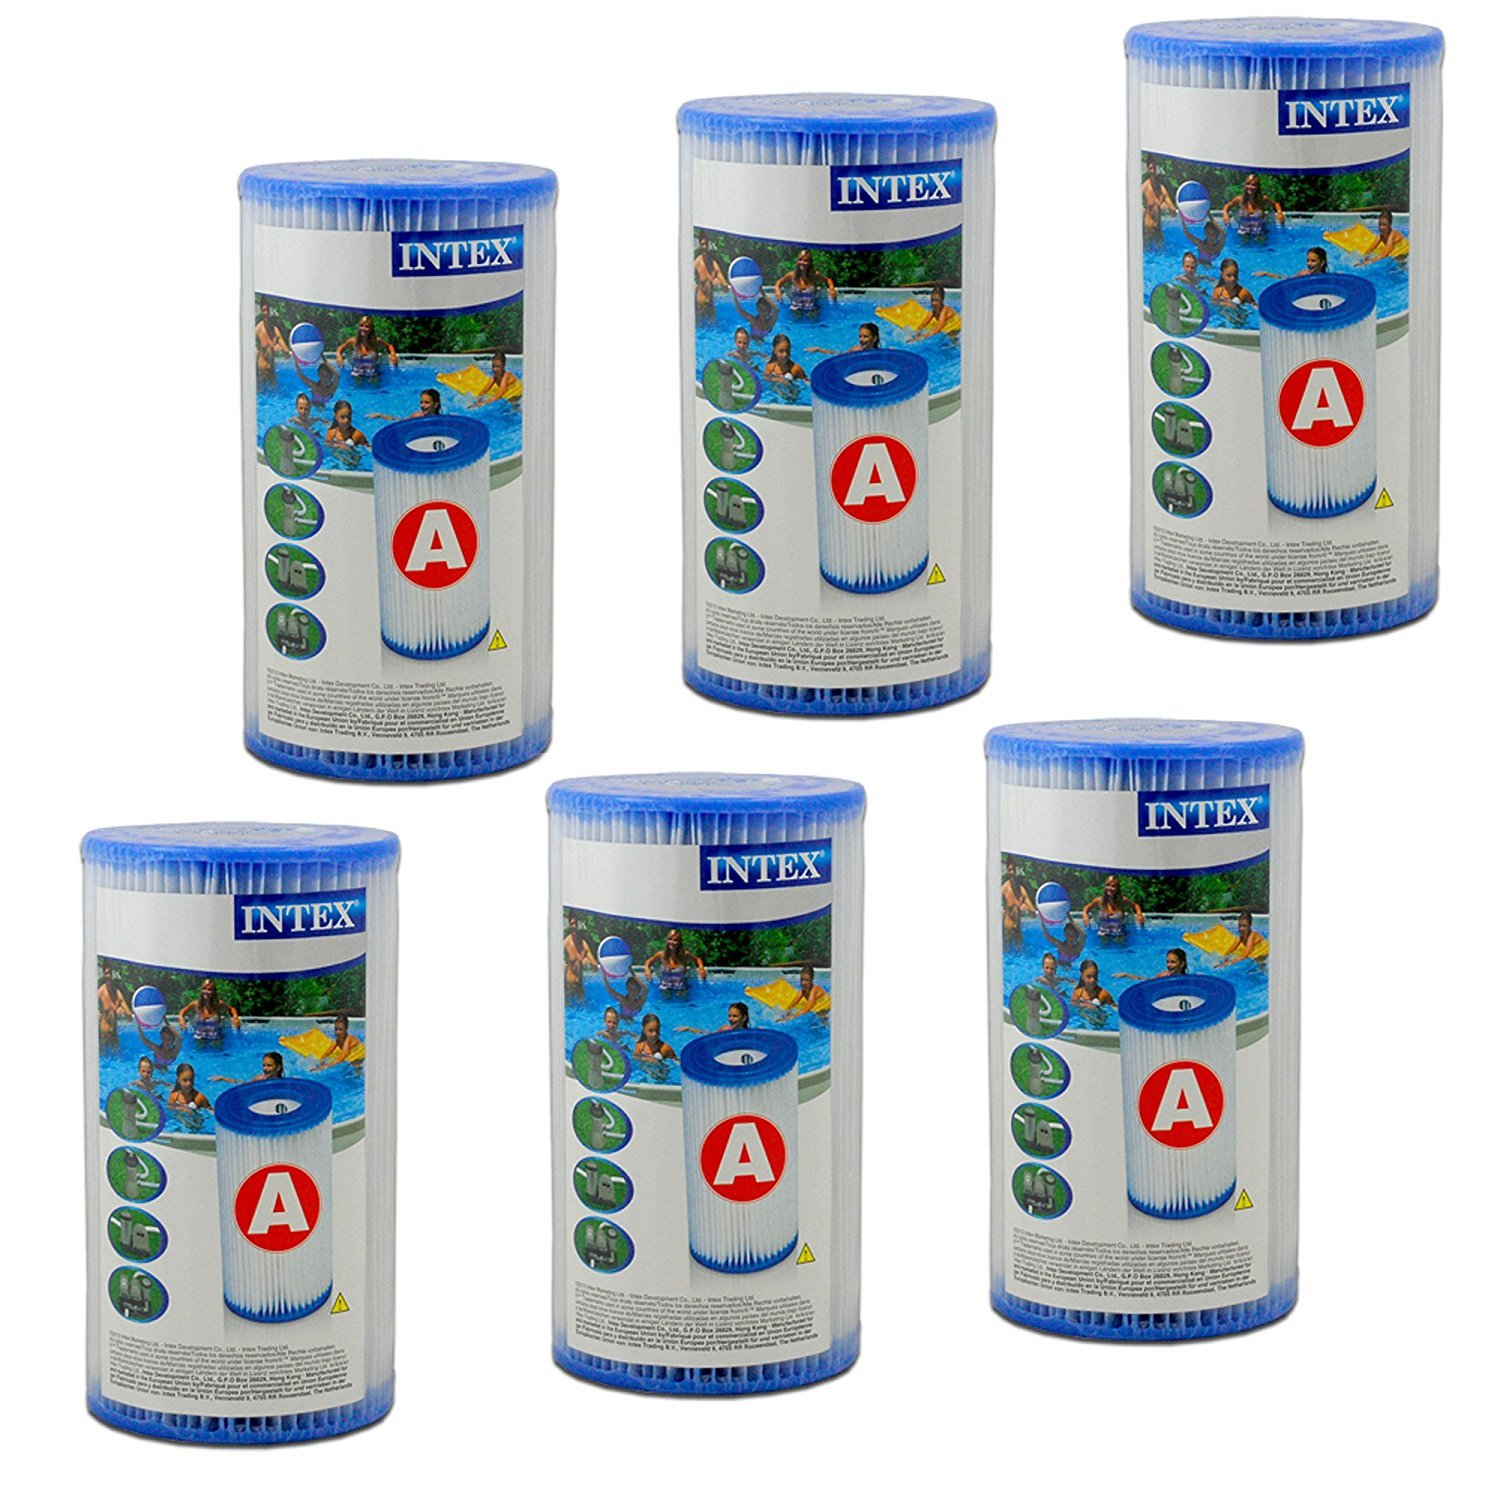 Intex 6 Filter Cartridges - Type A 29000box